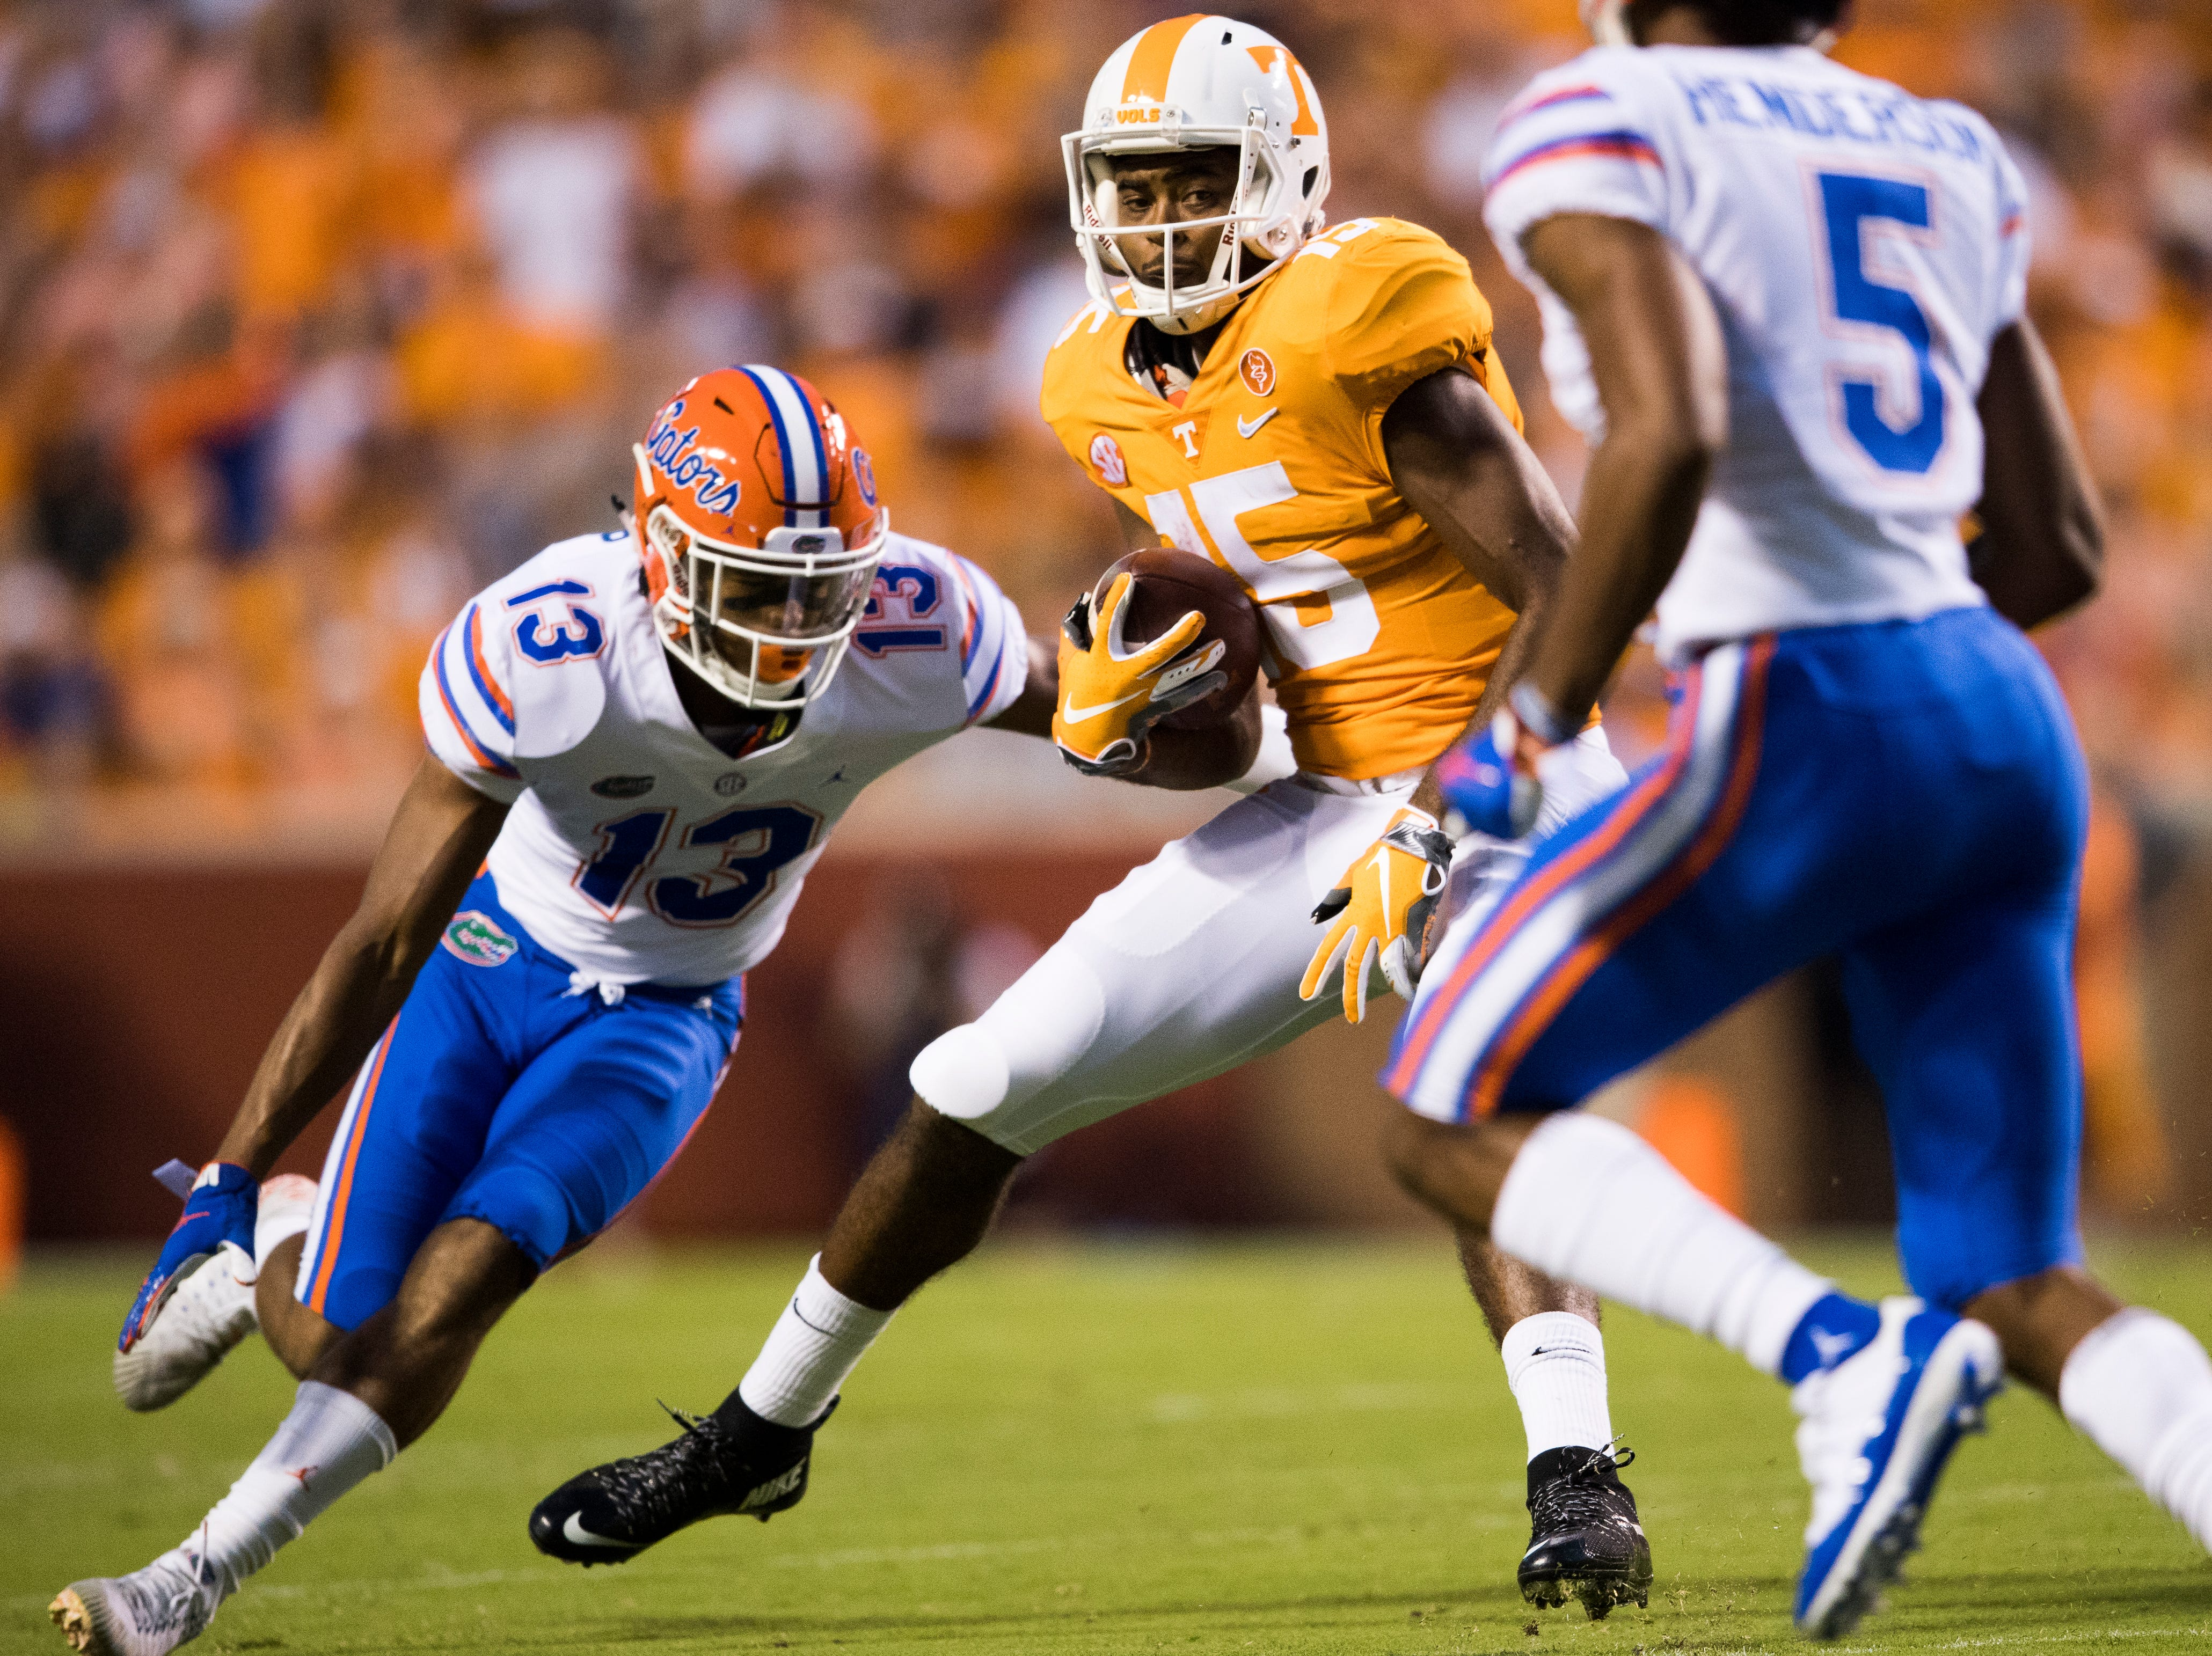 Tennessee wide receiver Jauan Jennings (15) looks to run past Florida safety Donovan Stiner (13) and  Florida defensive back CJ Henderson (5) during a game between Tennessee and Florida at Neyland Stadium in Knoxville, Tennessee on Saturday, September 22, 2018.